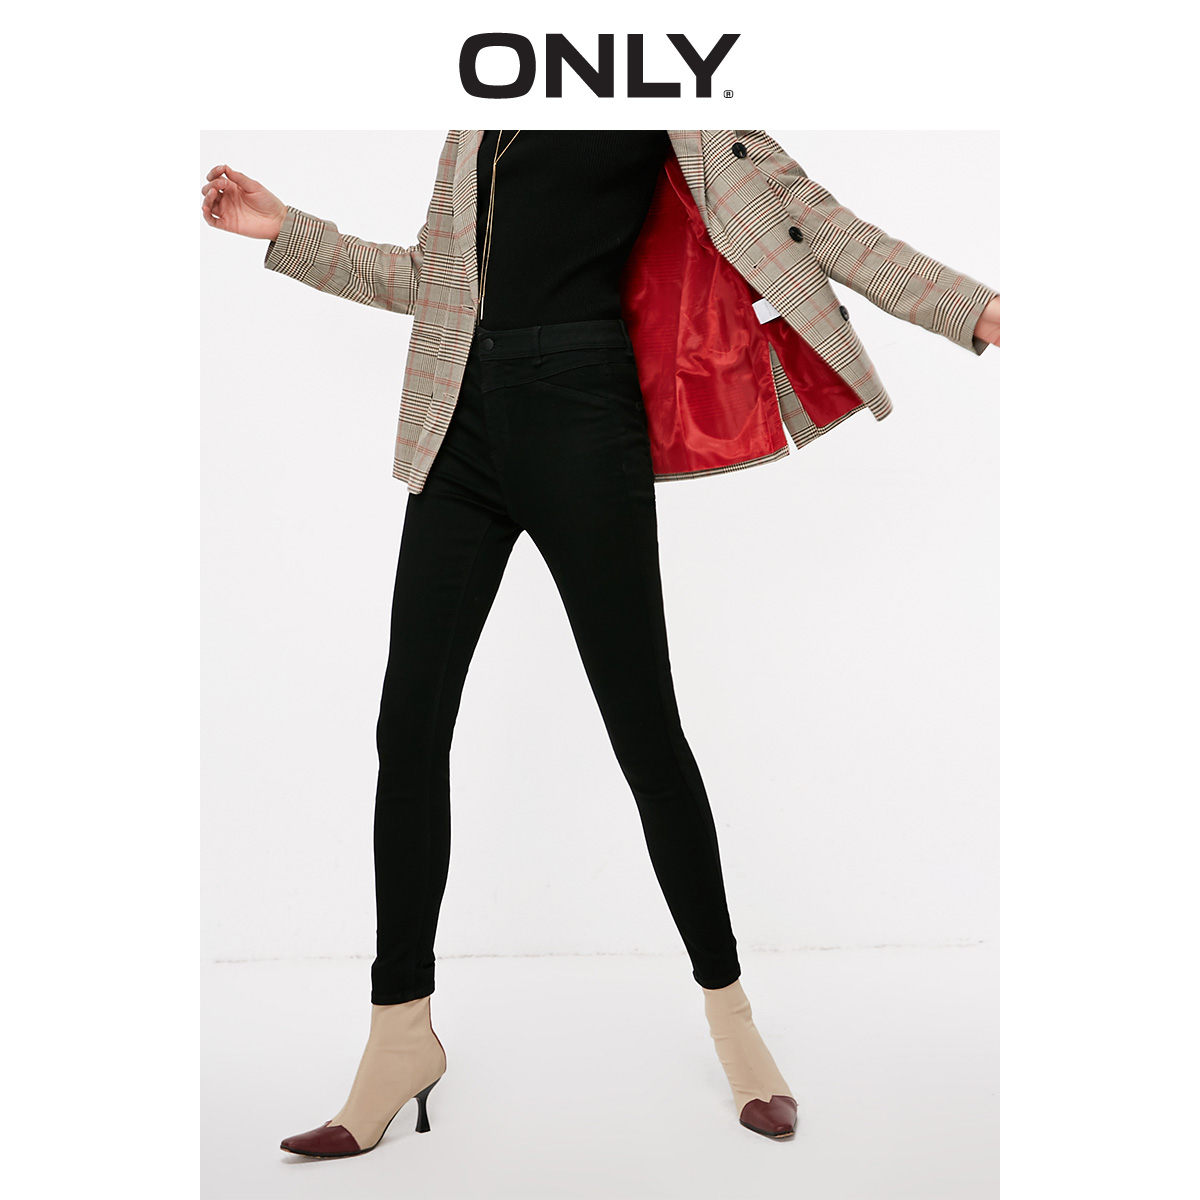 ONLY  Spring Summer New Women's High-rise Stretch Skinny Jeans |119163501